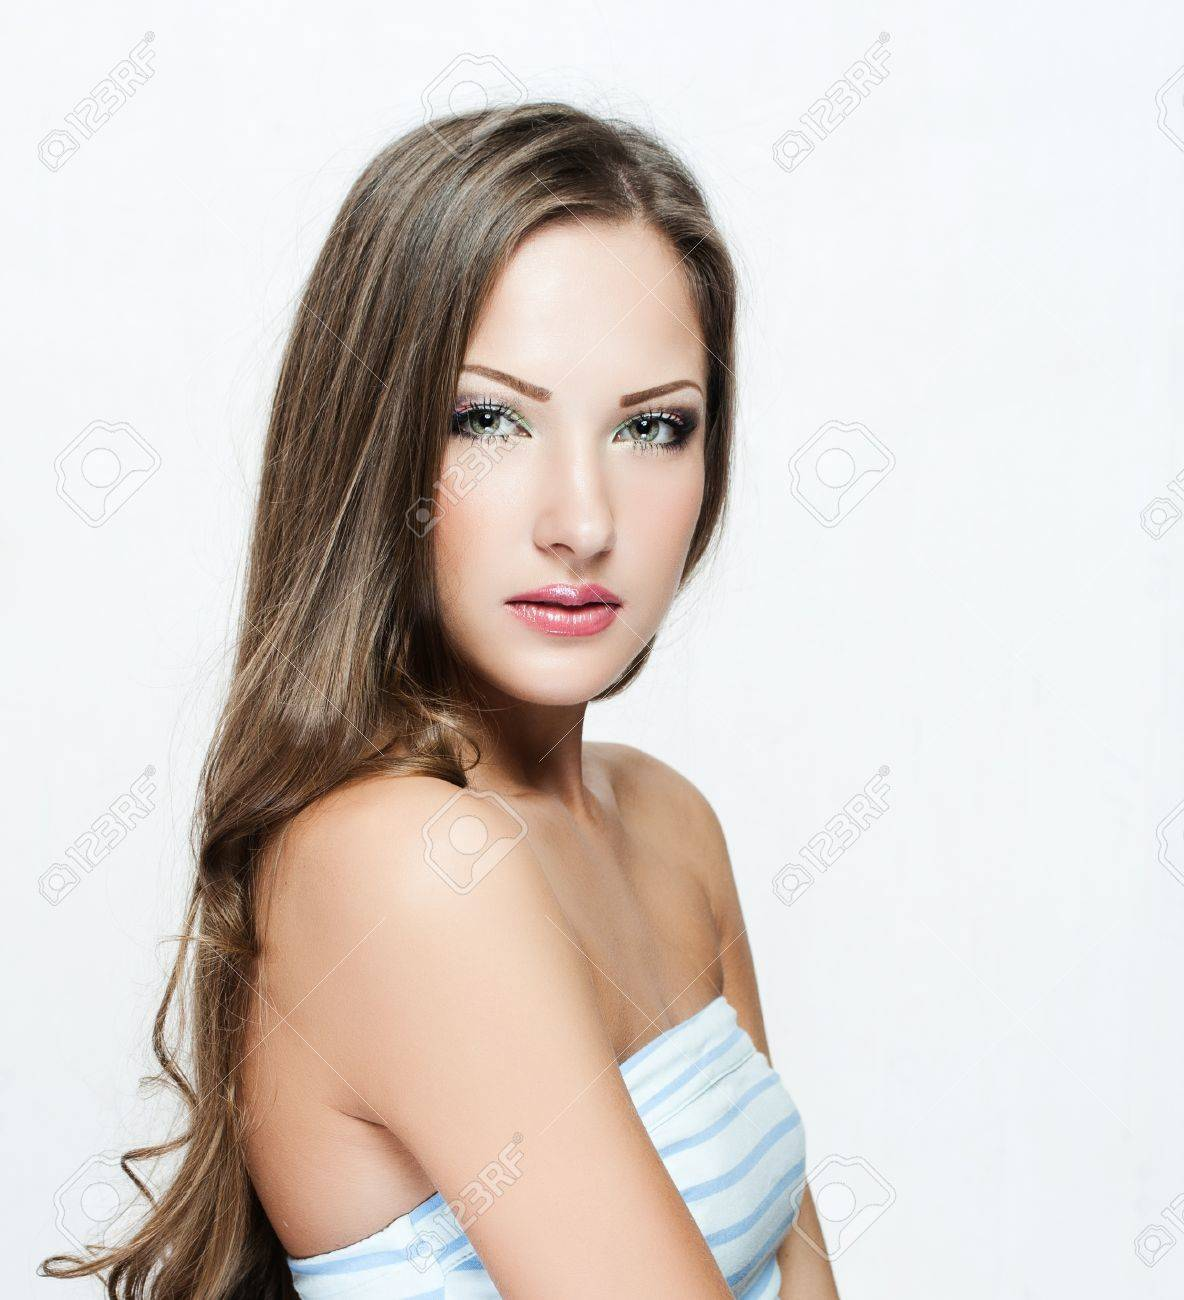 beautiful woman with long hair in dress , fashion model , glamour makeup Stock Photo - 17130166